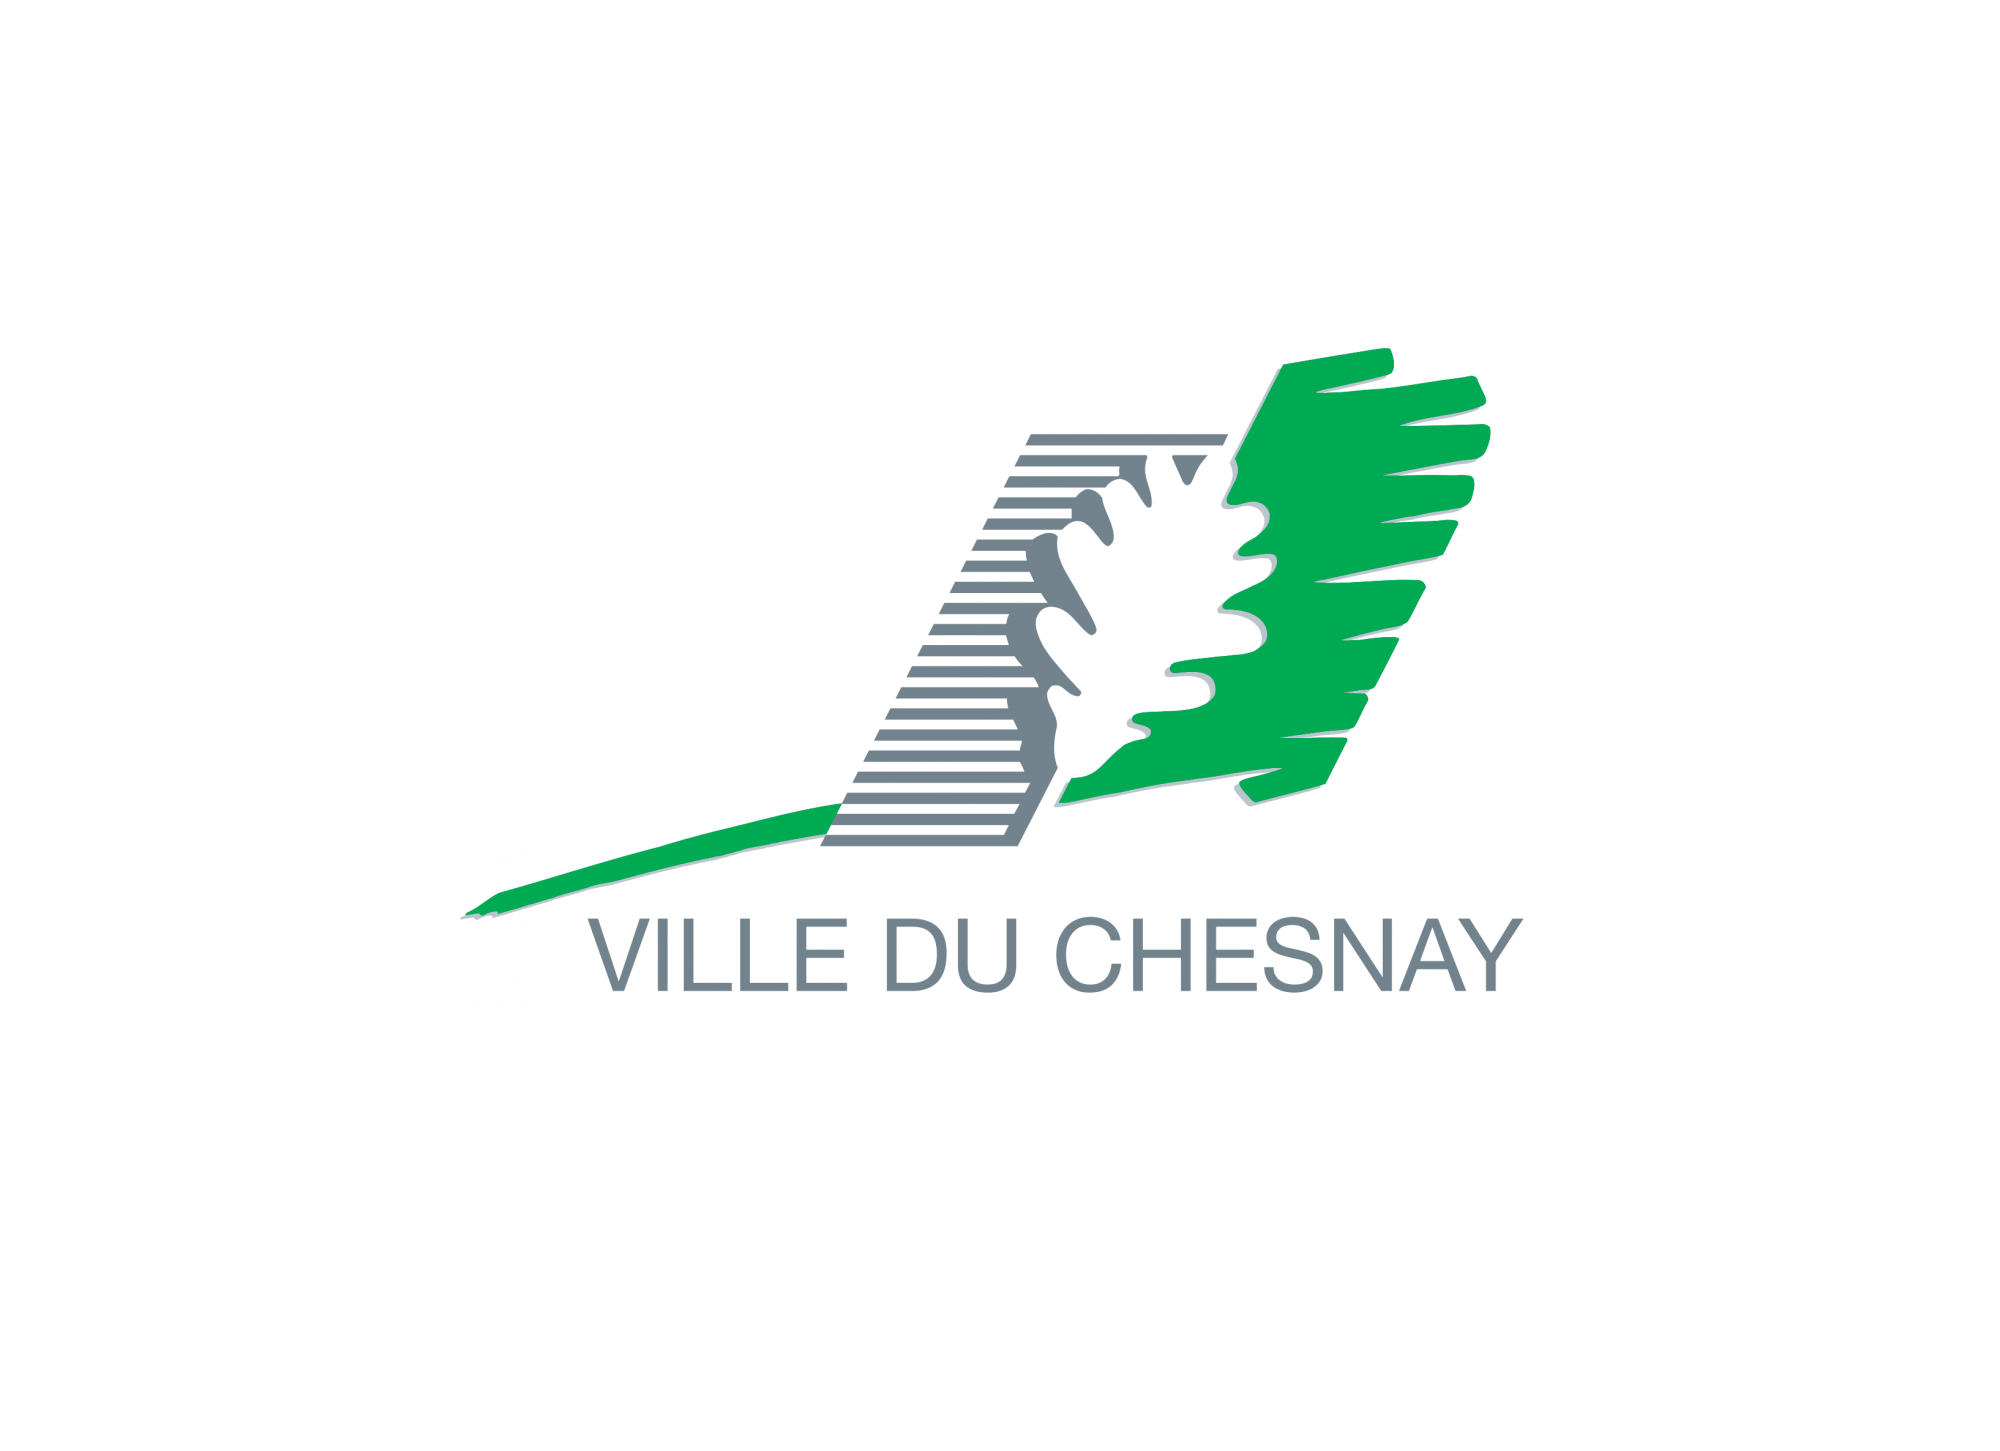 logo_ville_le_chesnay